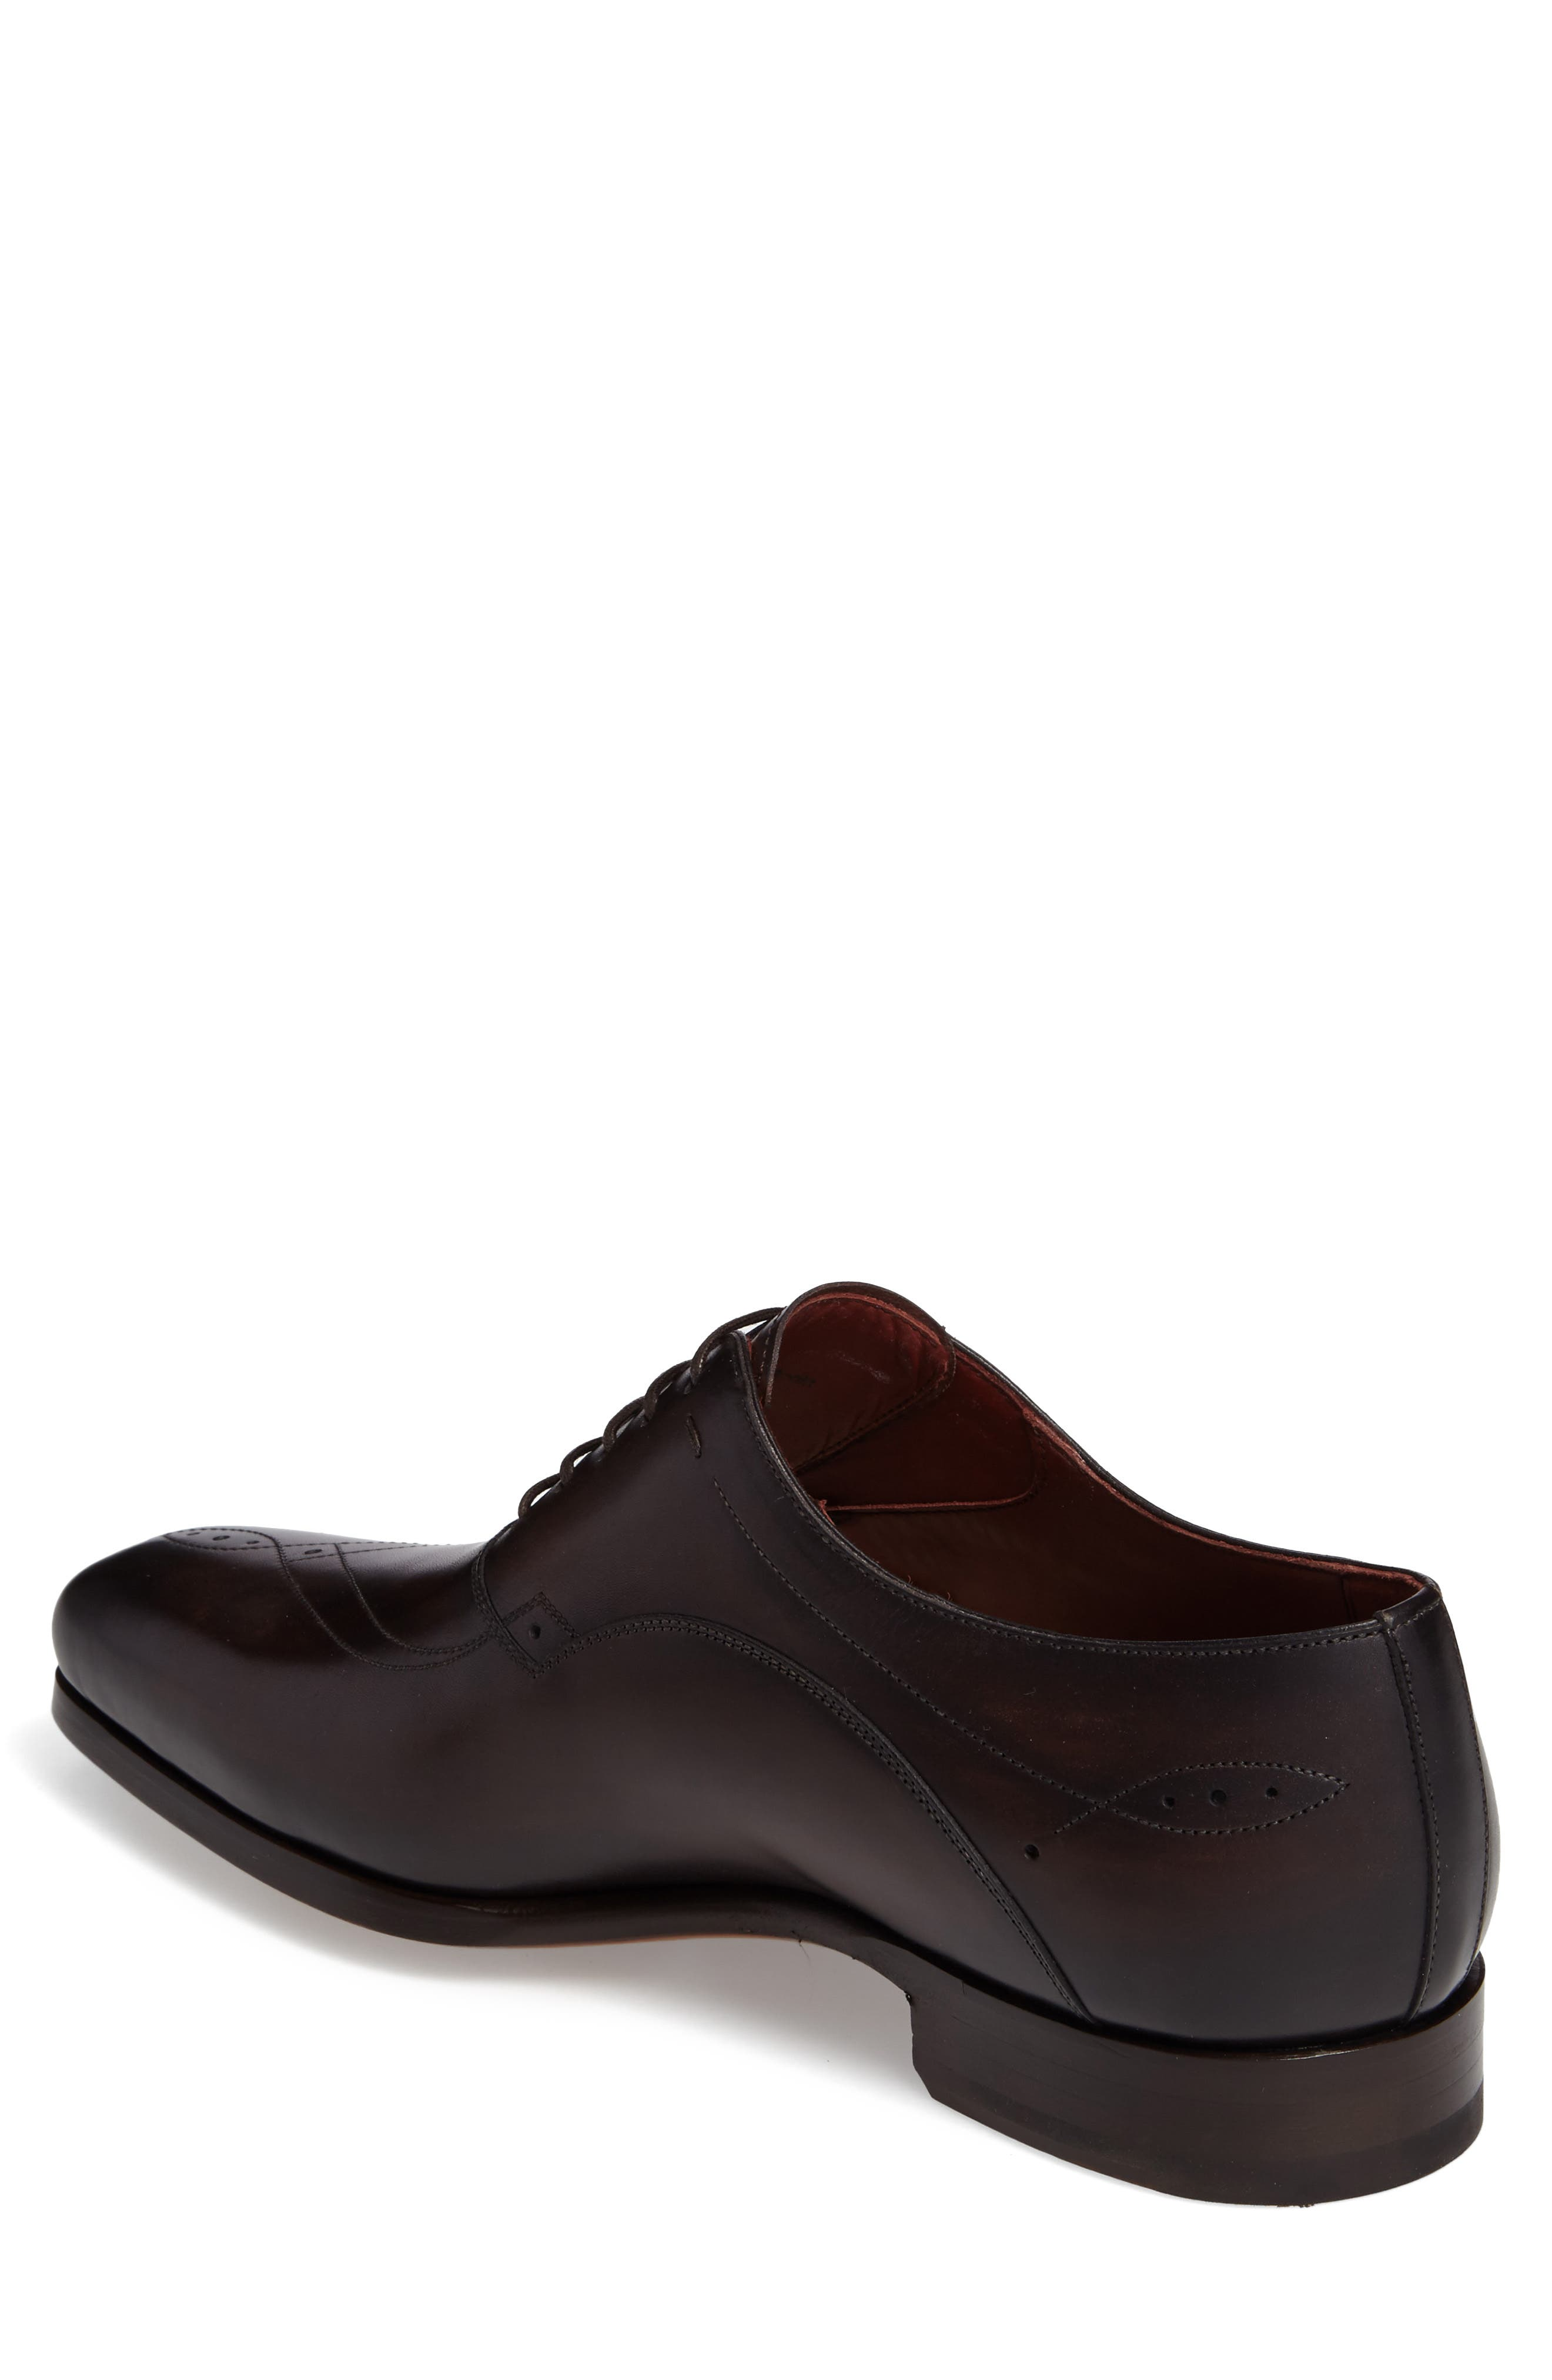 Francisco Plain Toe Oxford,                             Alternate thumbnail 2, color,                             Brown Leather